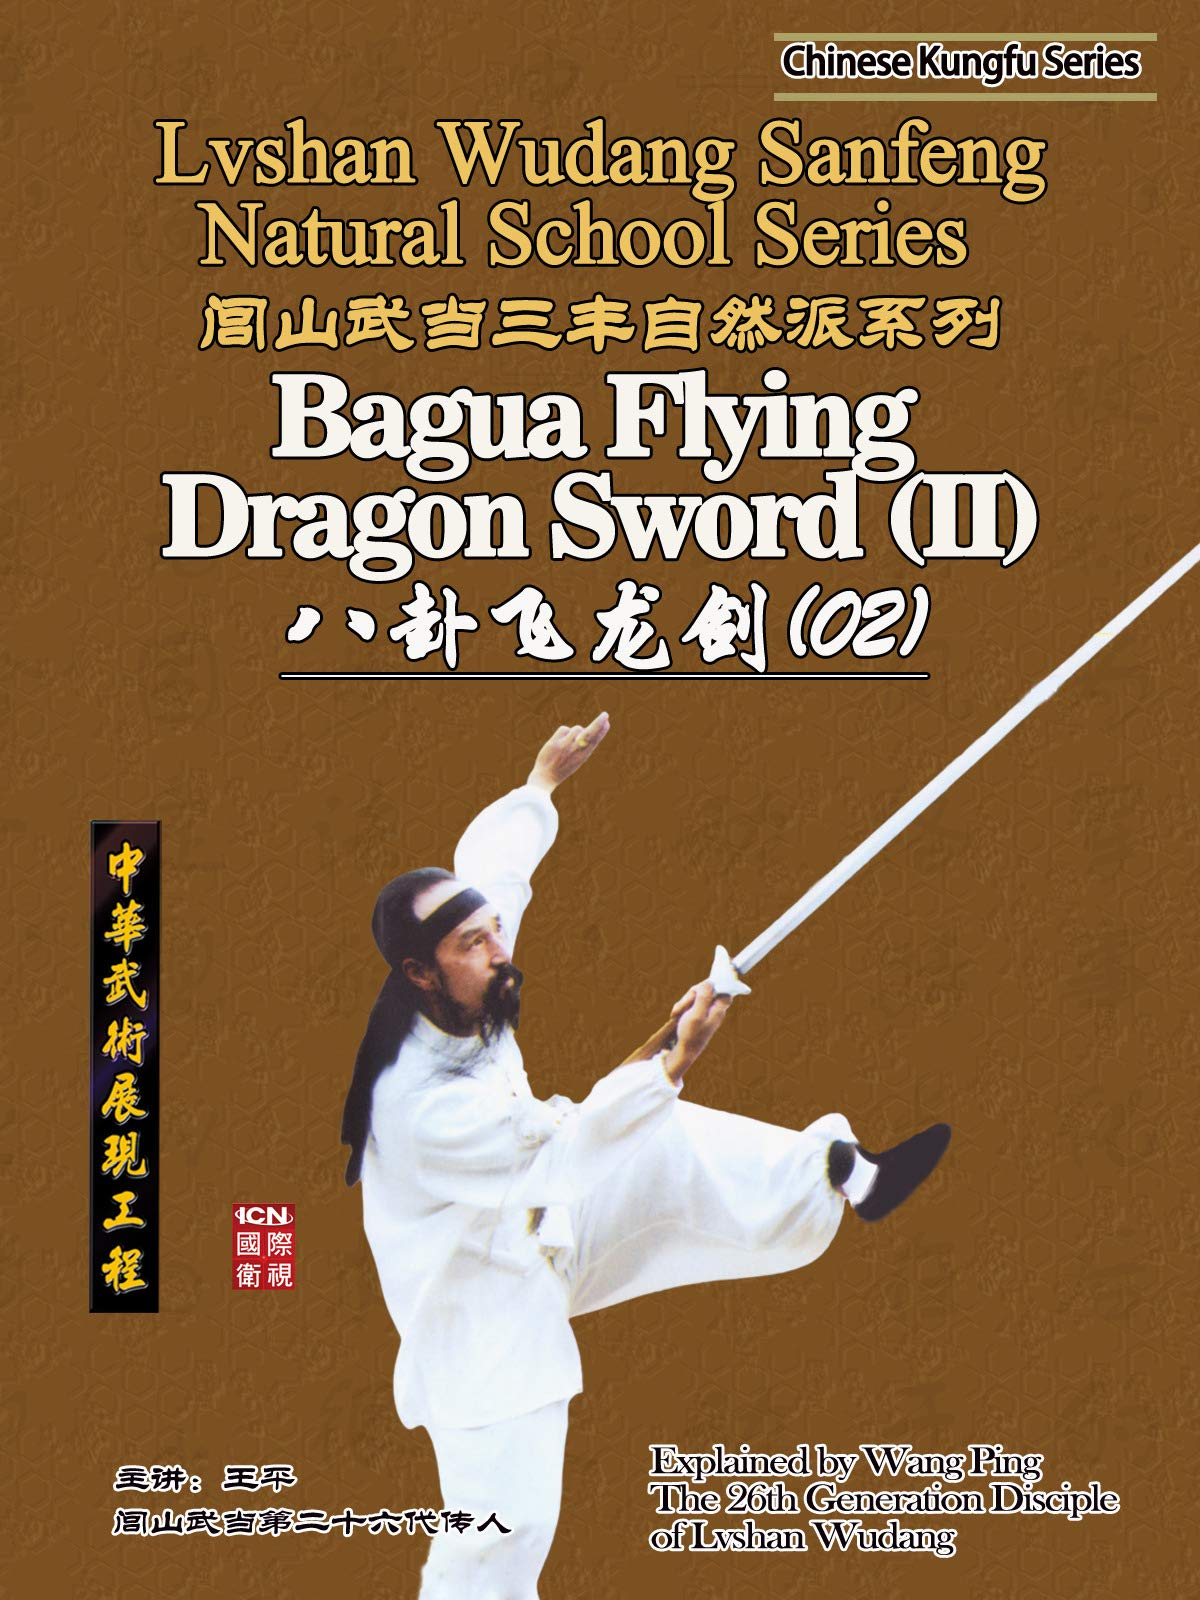 Lvshan Wudang Sanfeng Natural School Series-Bagua Flying Dragon Sword (II) (Explained by Wang Ping) on Amazon Prime Instant Video UK